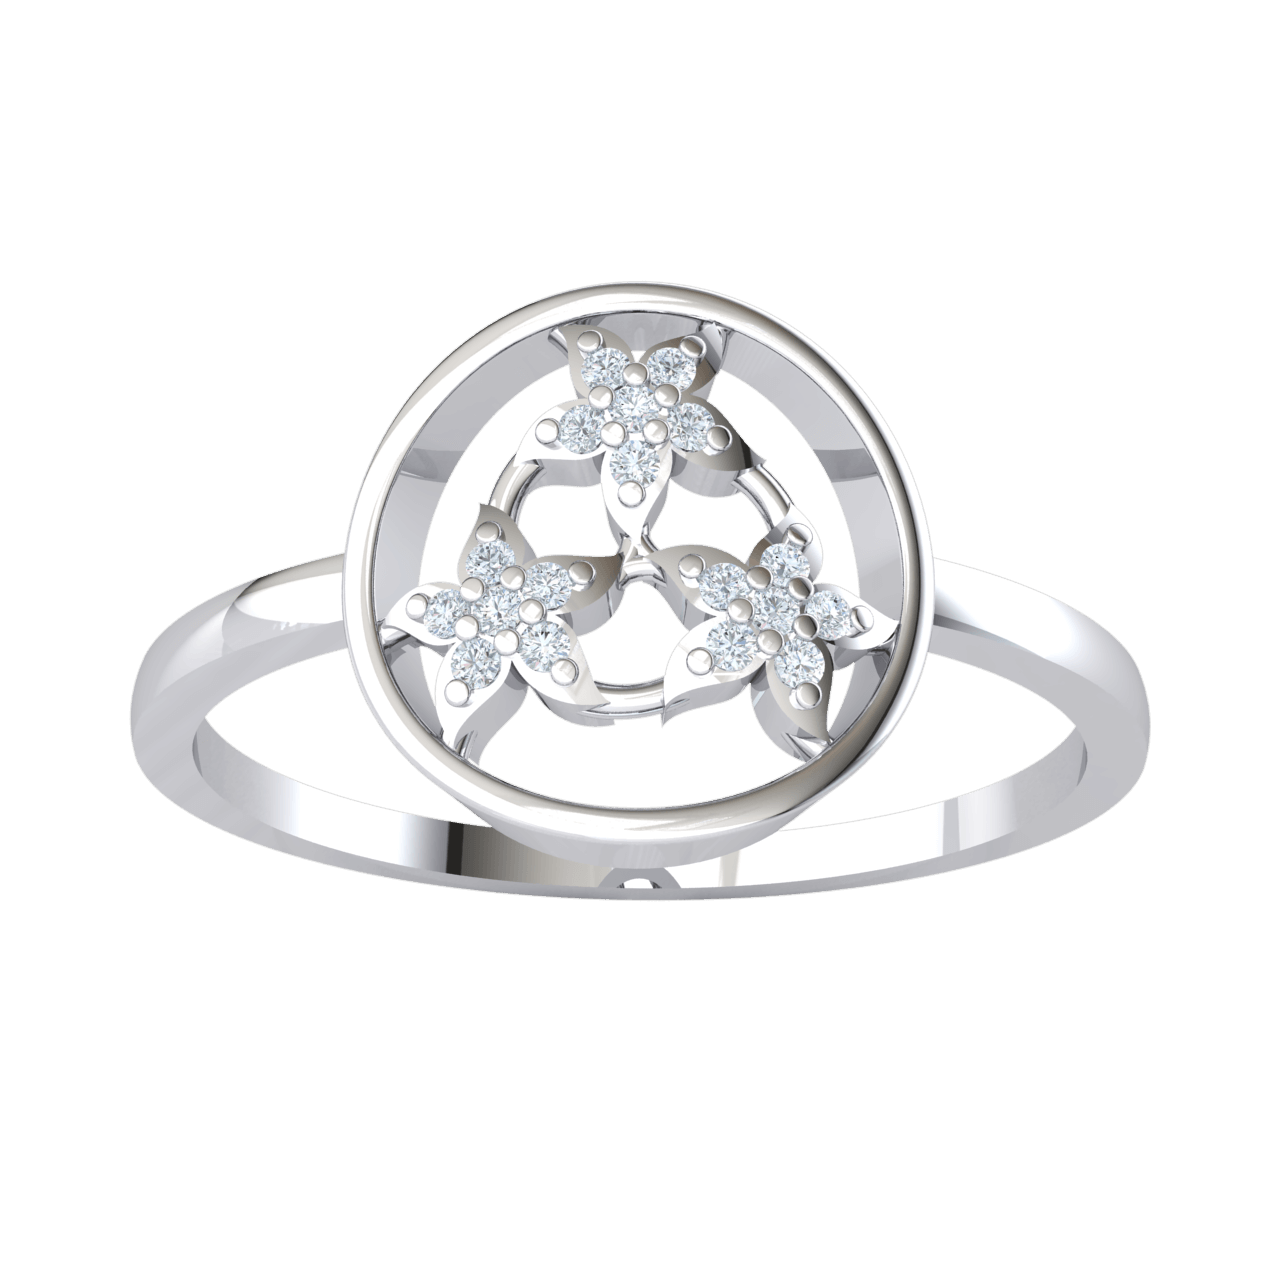 0.07 Ct JK I1-I2 3 Beautiful 7 Stone Flowers Come Together To Make A Gorgeous Centerpiece Set In A Real Band in .925 Sterling Silver